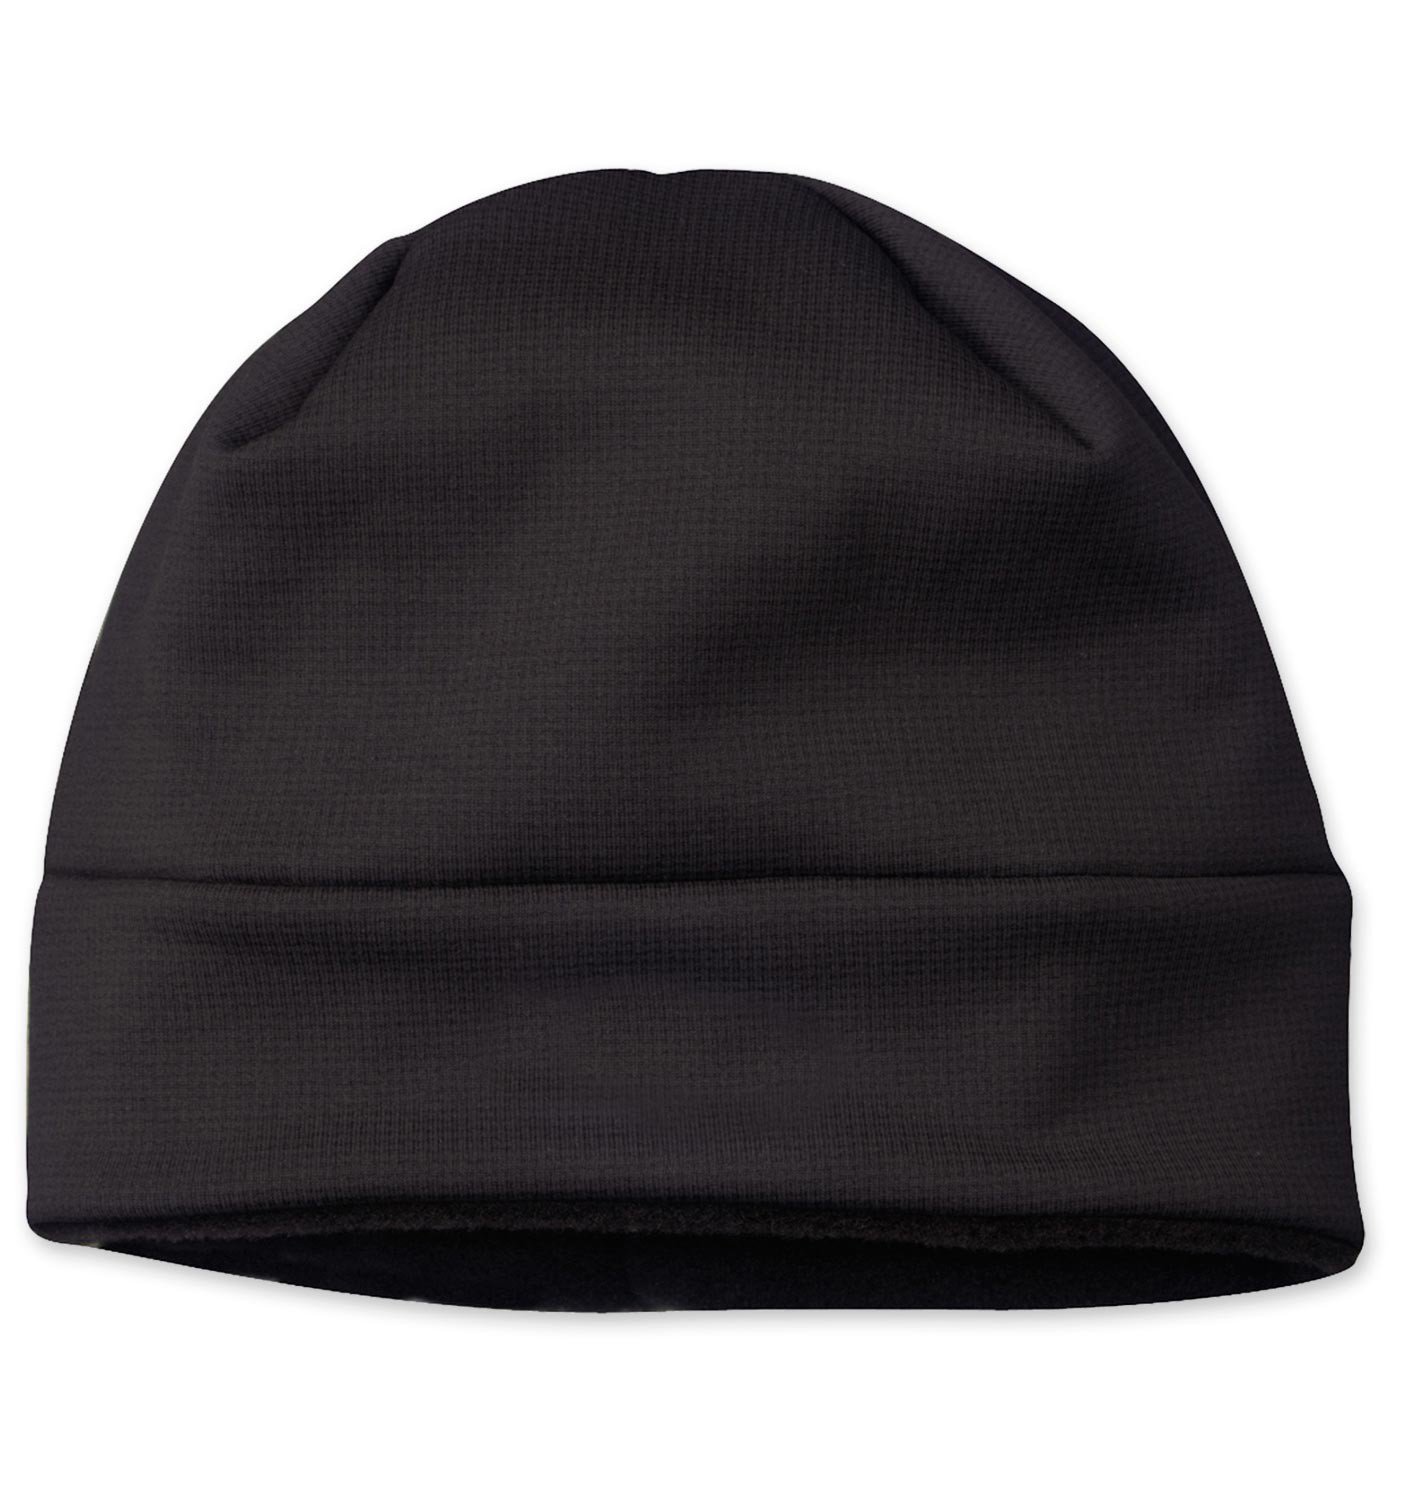 Key Features of the Outdoor Research Wind Pro Beanie: Polartec Wind Pro with Hard Face finish and soft fleece interior Segmented crown construction Double layer fabric on ear band - $33.00